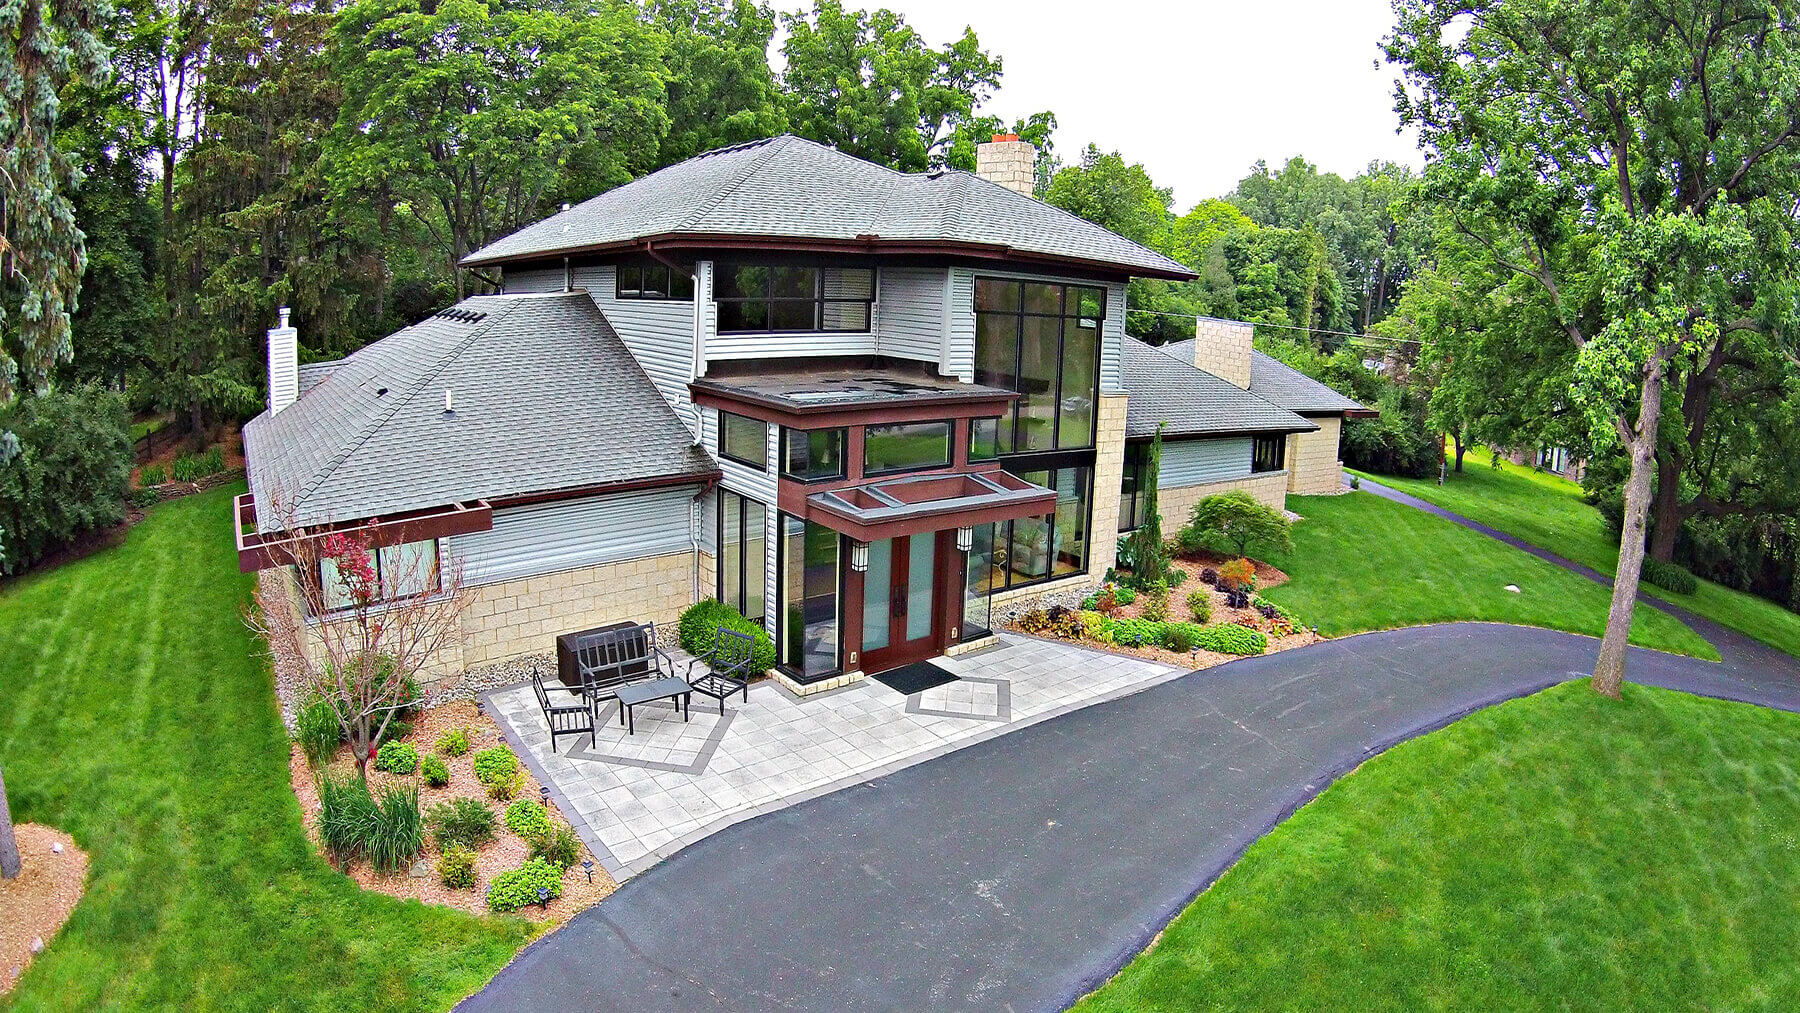 7106 Old Mill - Bloomfield Hills, Michigan - $1,348,000 USD